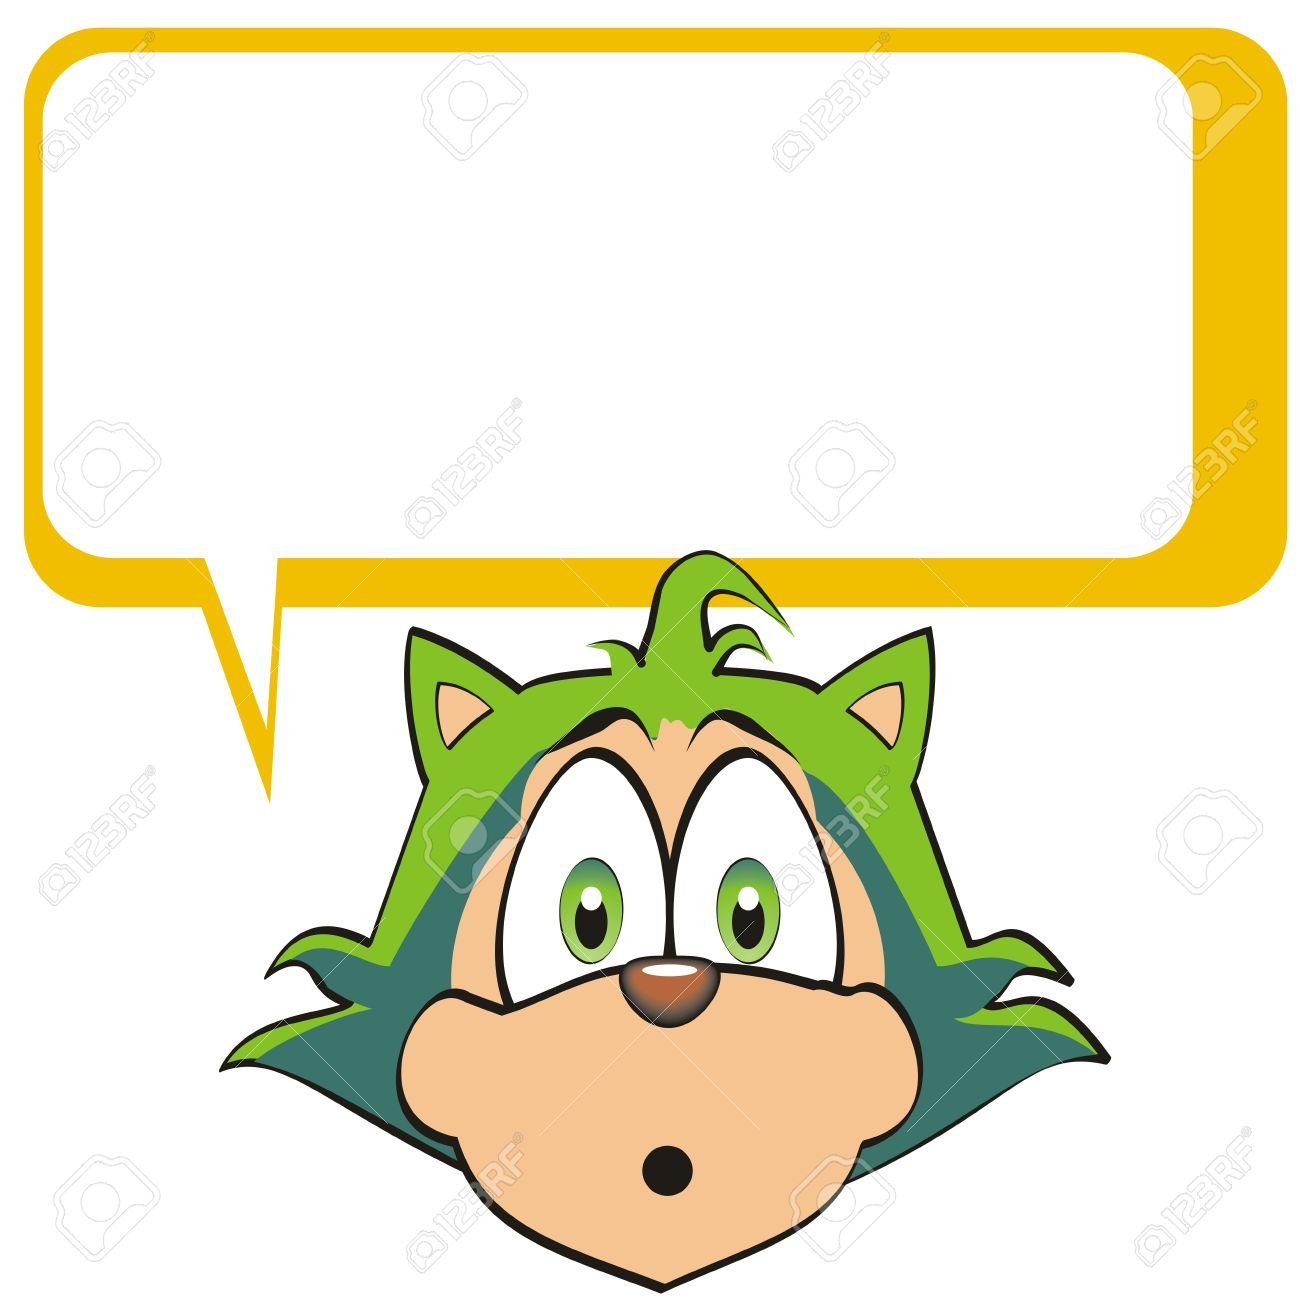 text box clipart. sympathetic green kitten with empty text box for you to fill the desired clipart